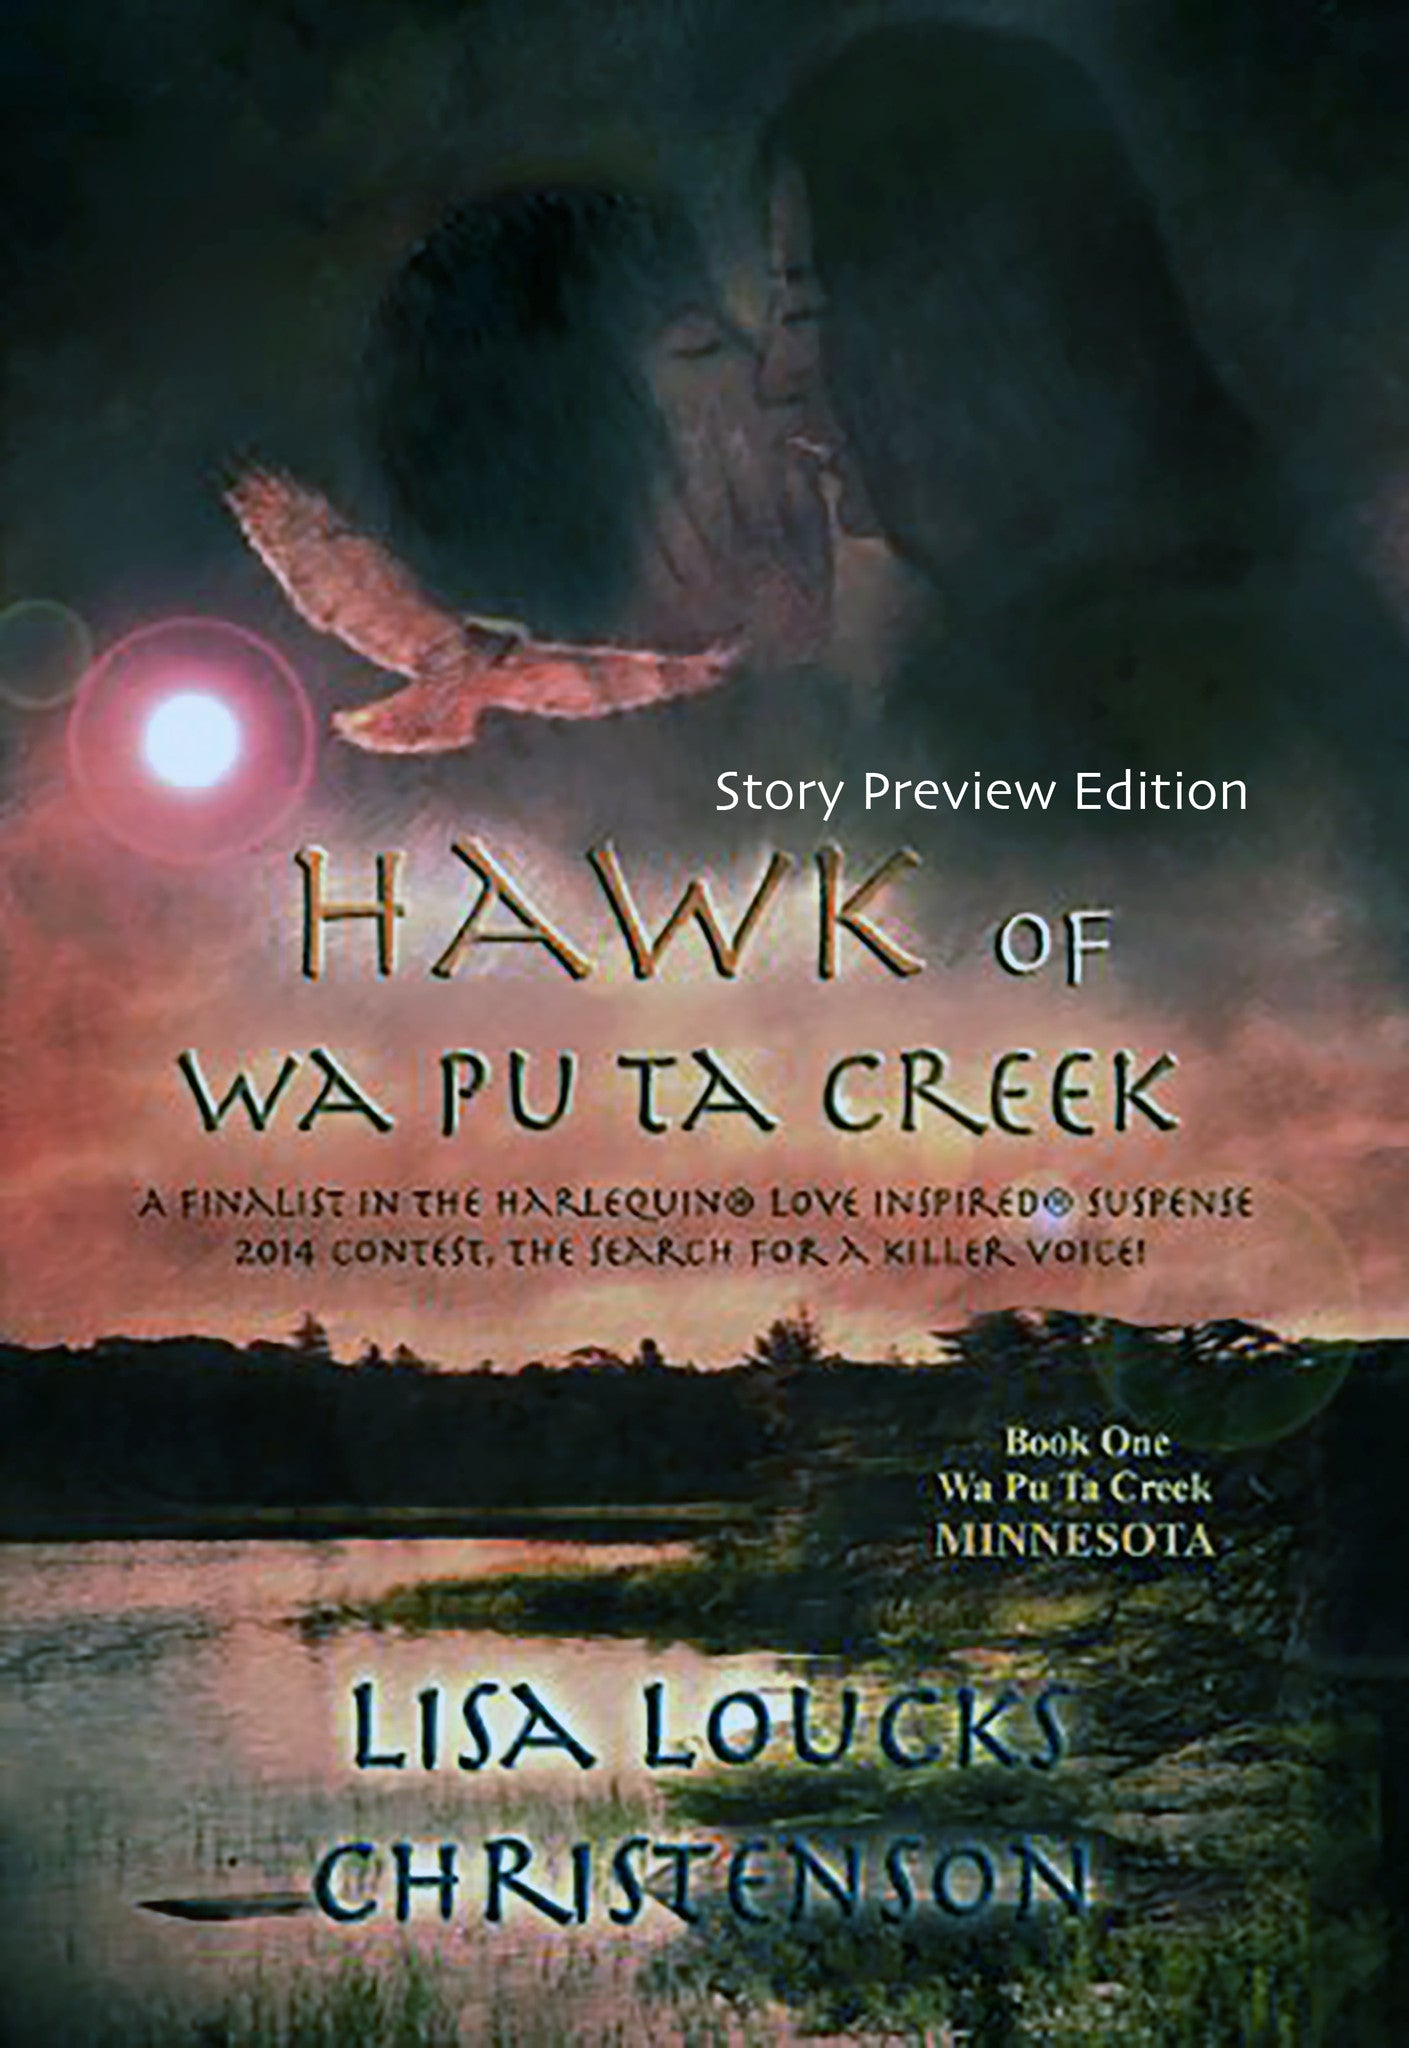 Hawk of Wa Pu Ta Creek | STORY PREVIEW EDITION